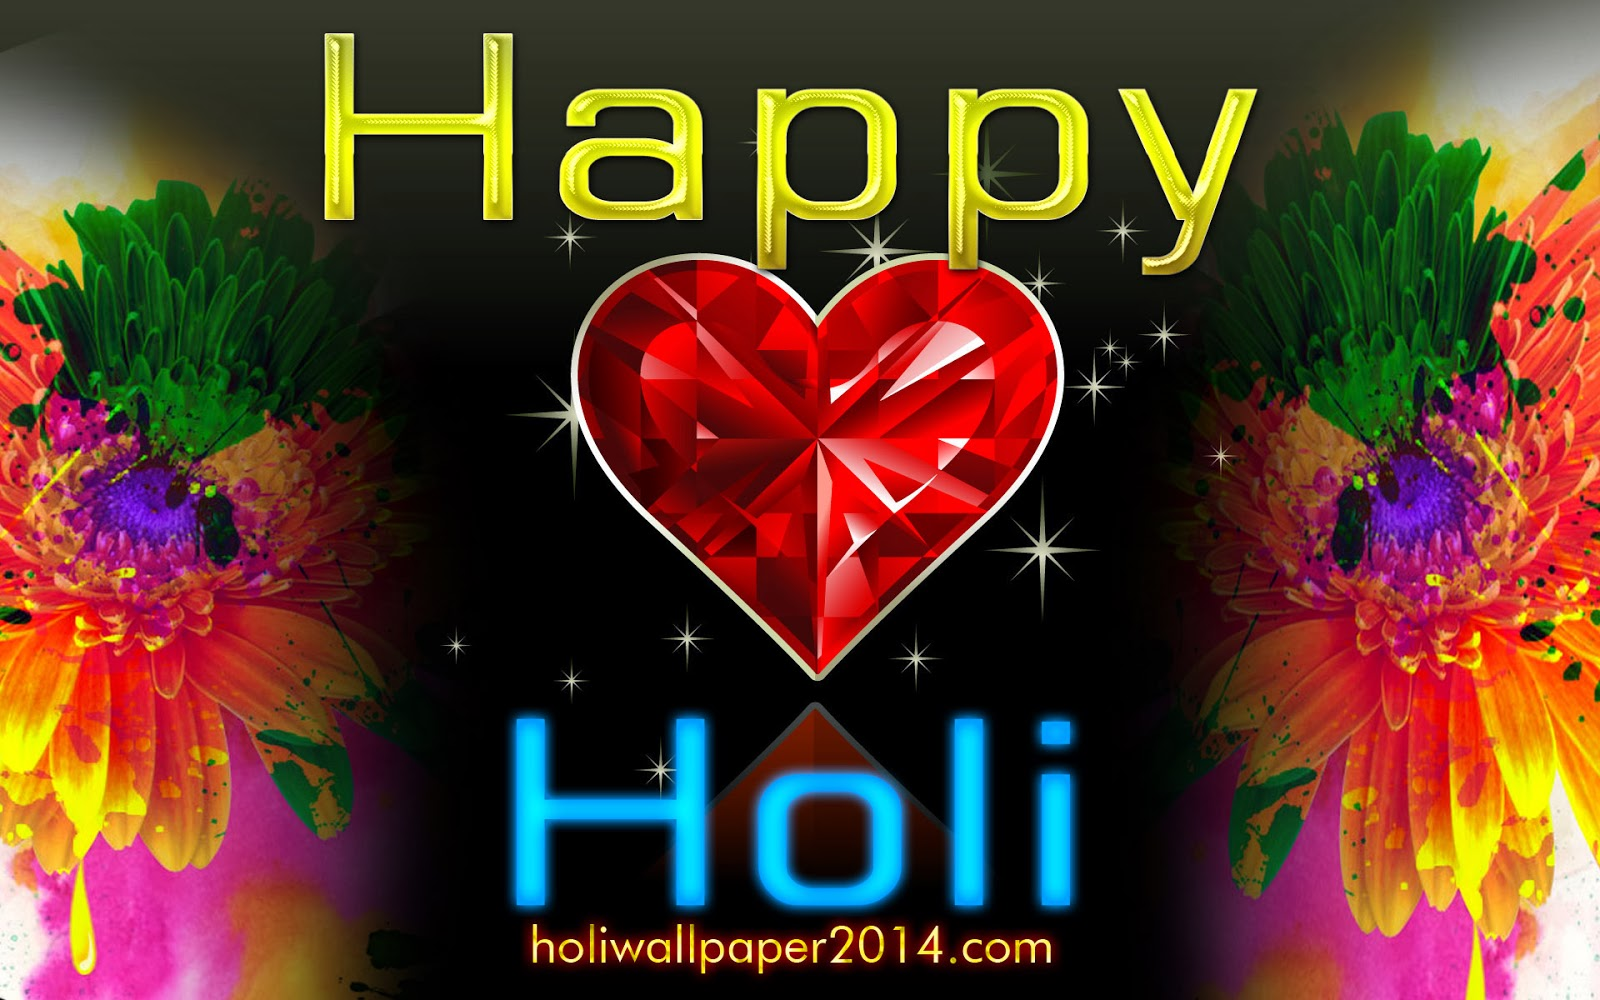 Holi wallpaper 2014 HD for whatsapp and Facebook